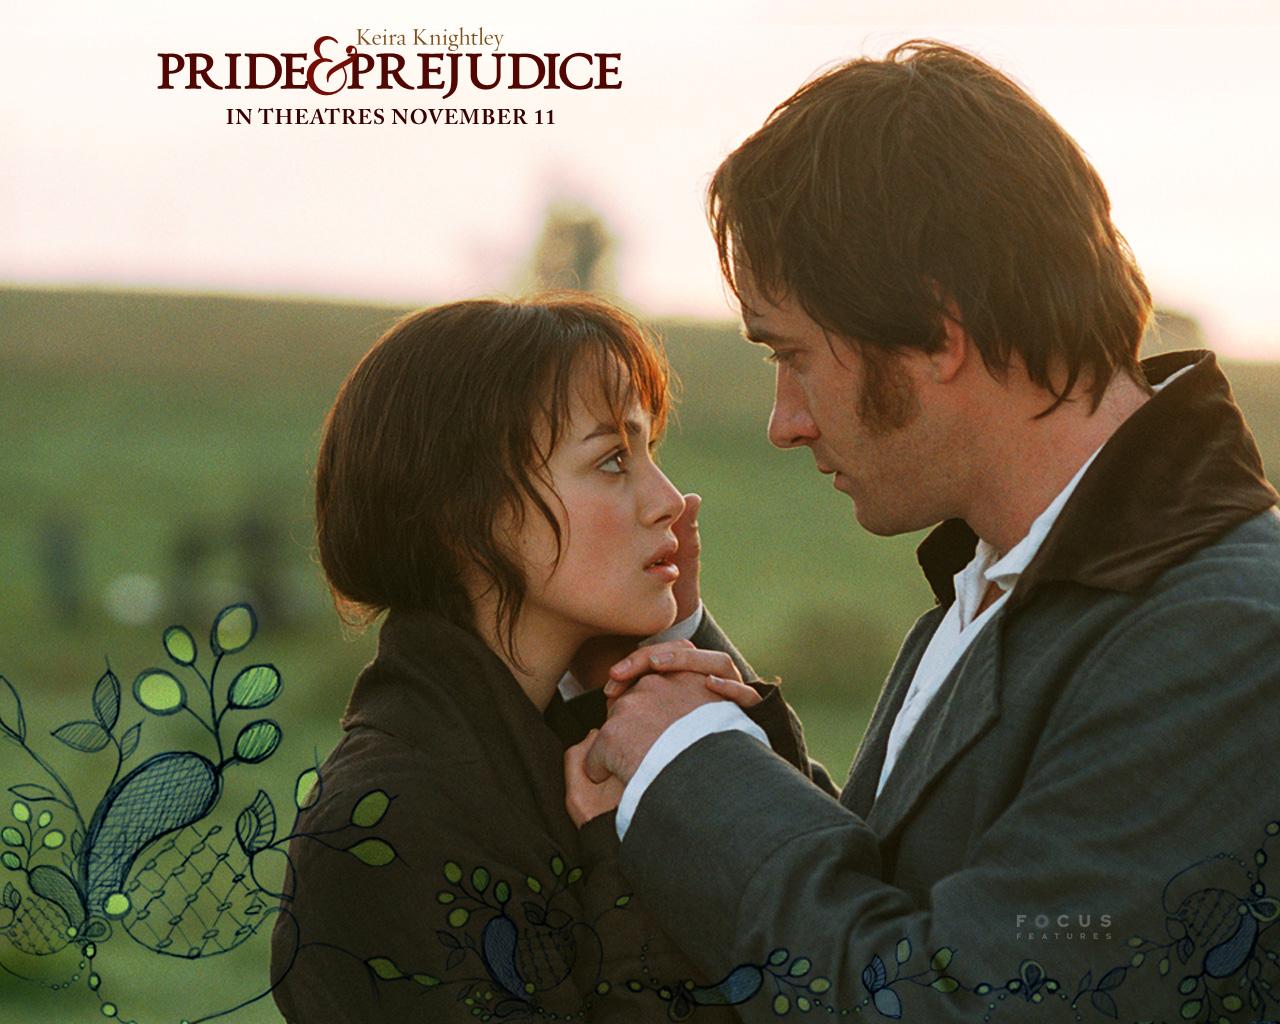 http://4.bp.blogspot.com/_tp_X3DDGwCE/TMV1-NetR4I/AAAAAAAAAGU/qpfqP5aK2rE/s1600/Keira_Knightley_in_Pride_and_Prejudice_Wallpaper_4_1280.jpg